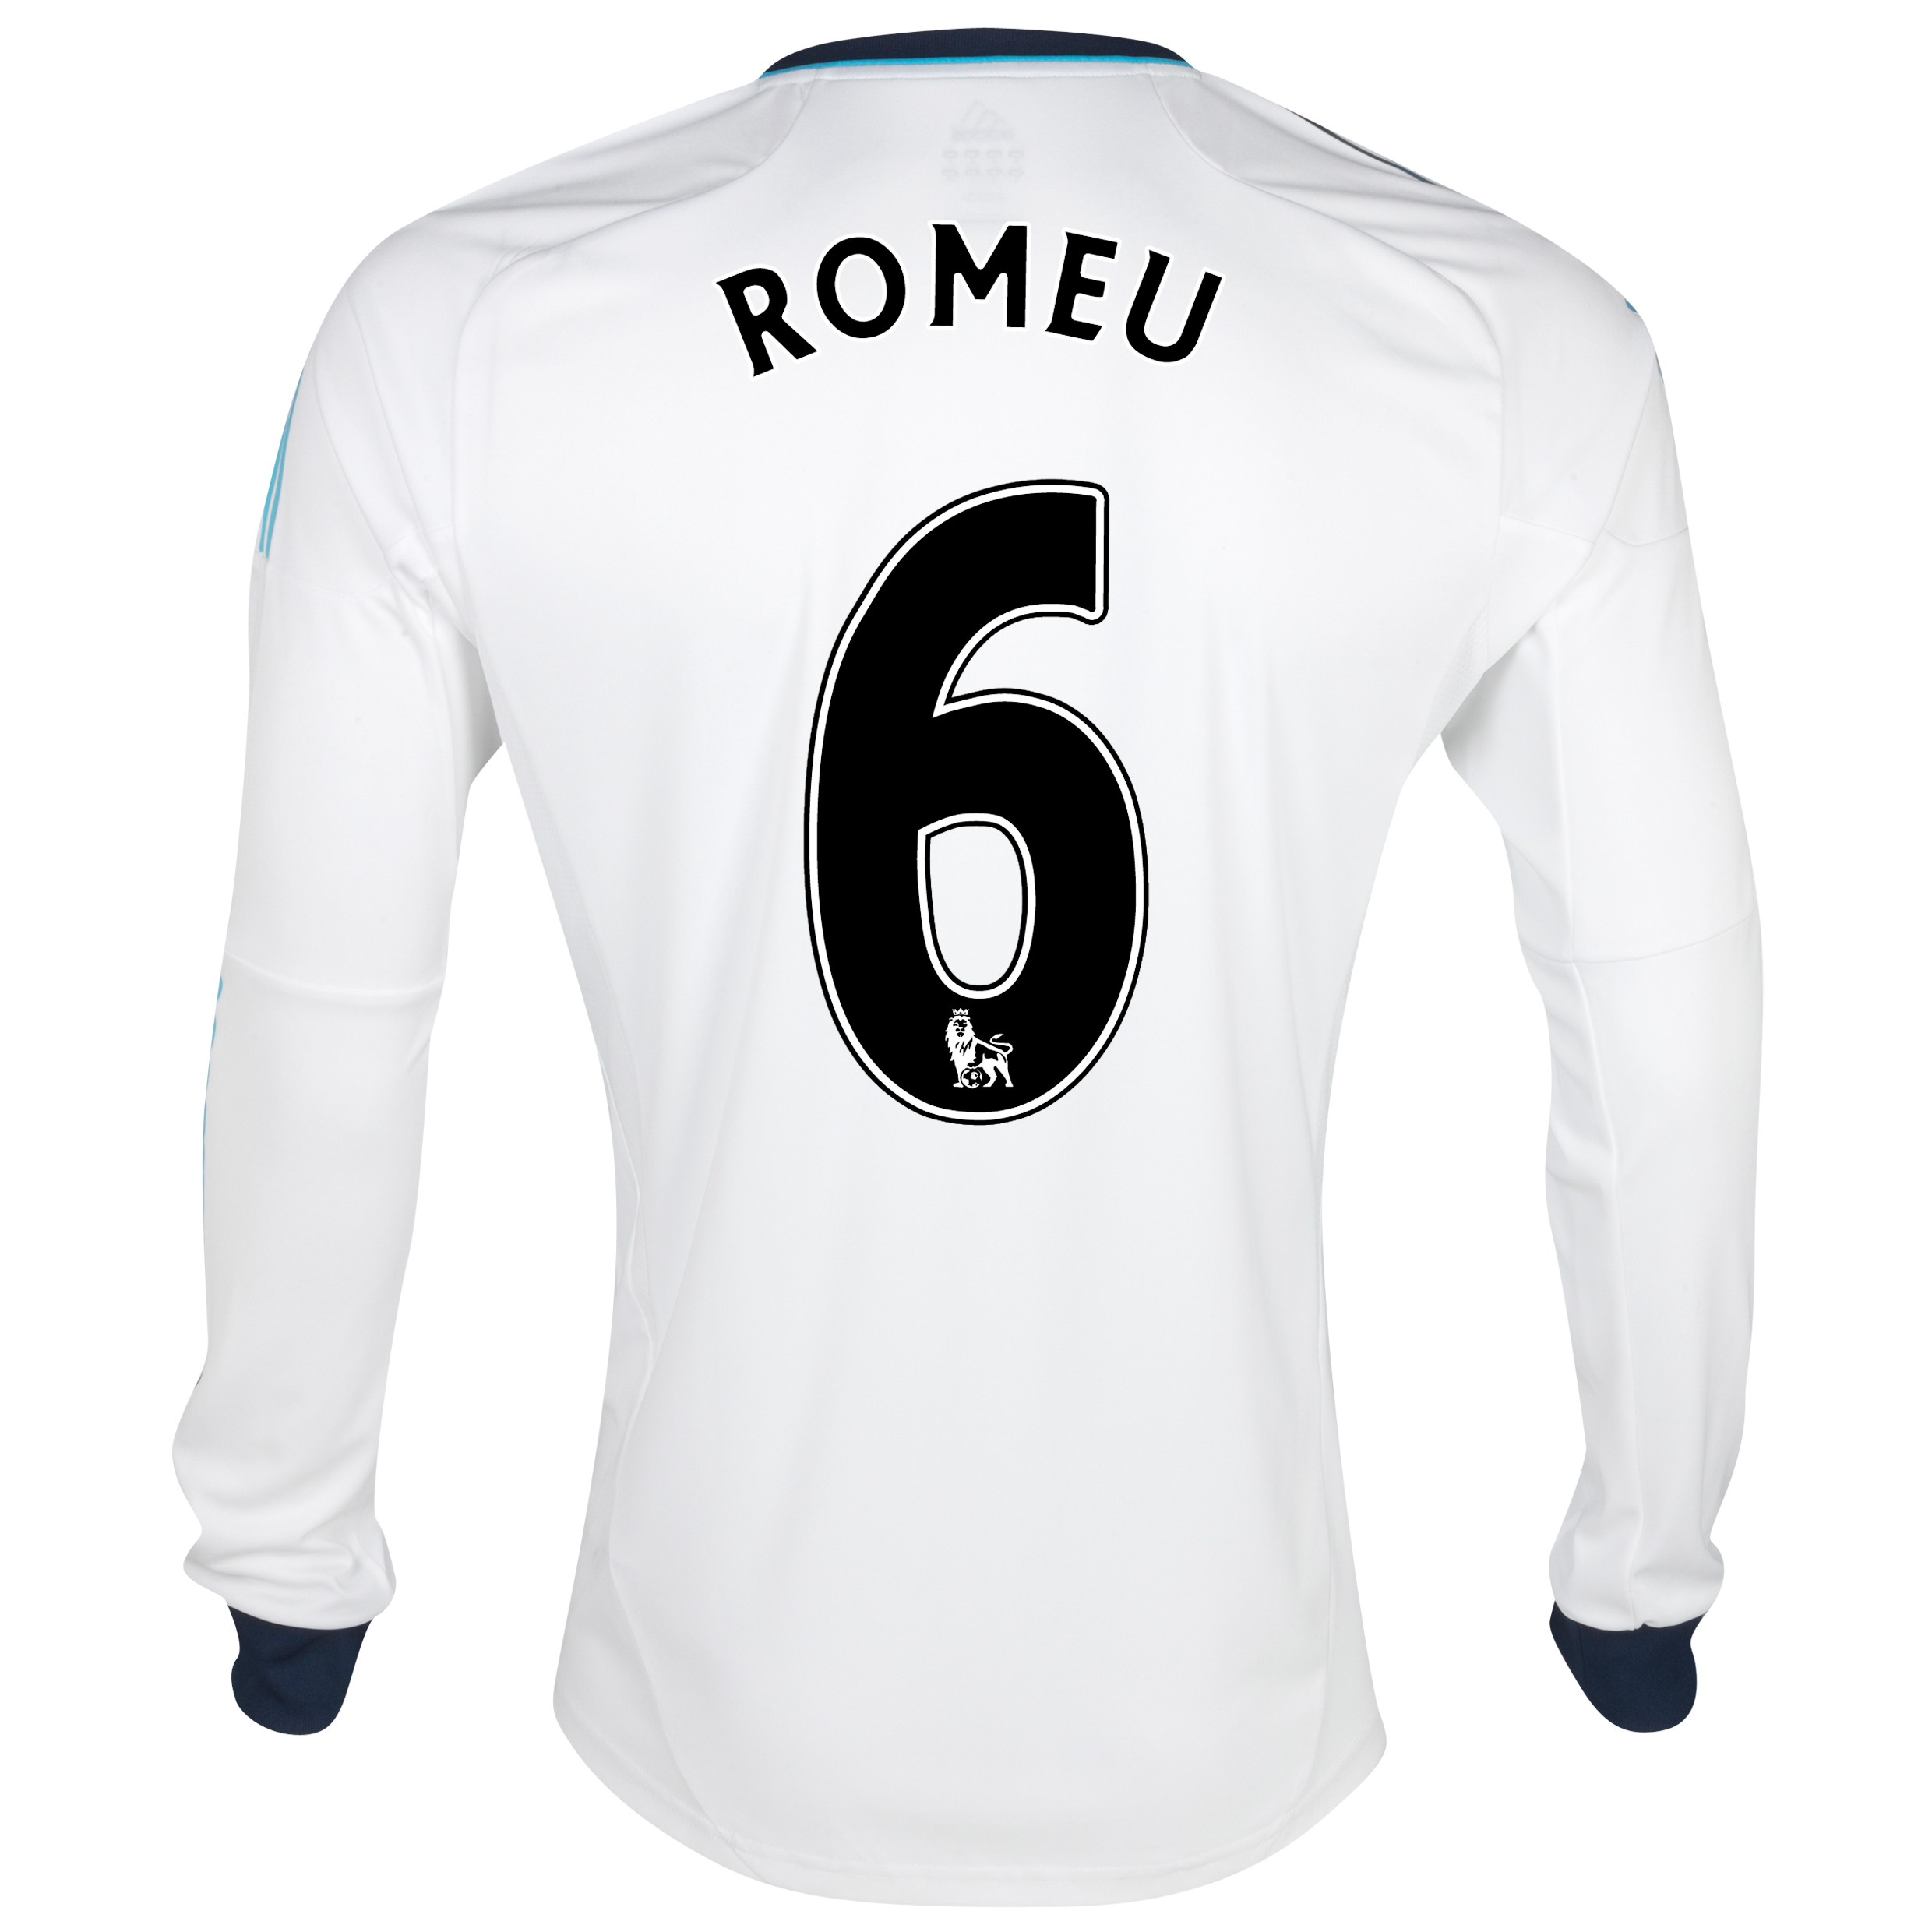 Chelsea Away Shirt 2012/13 - Long Sleeved  - Youths with Romeu 6 printing